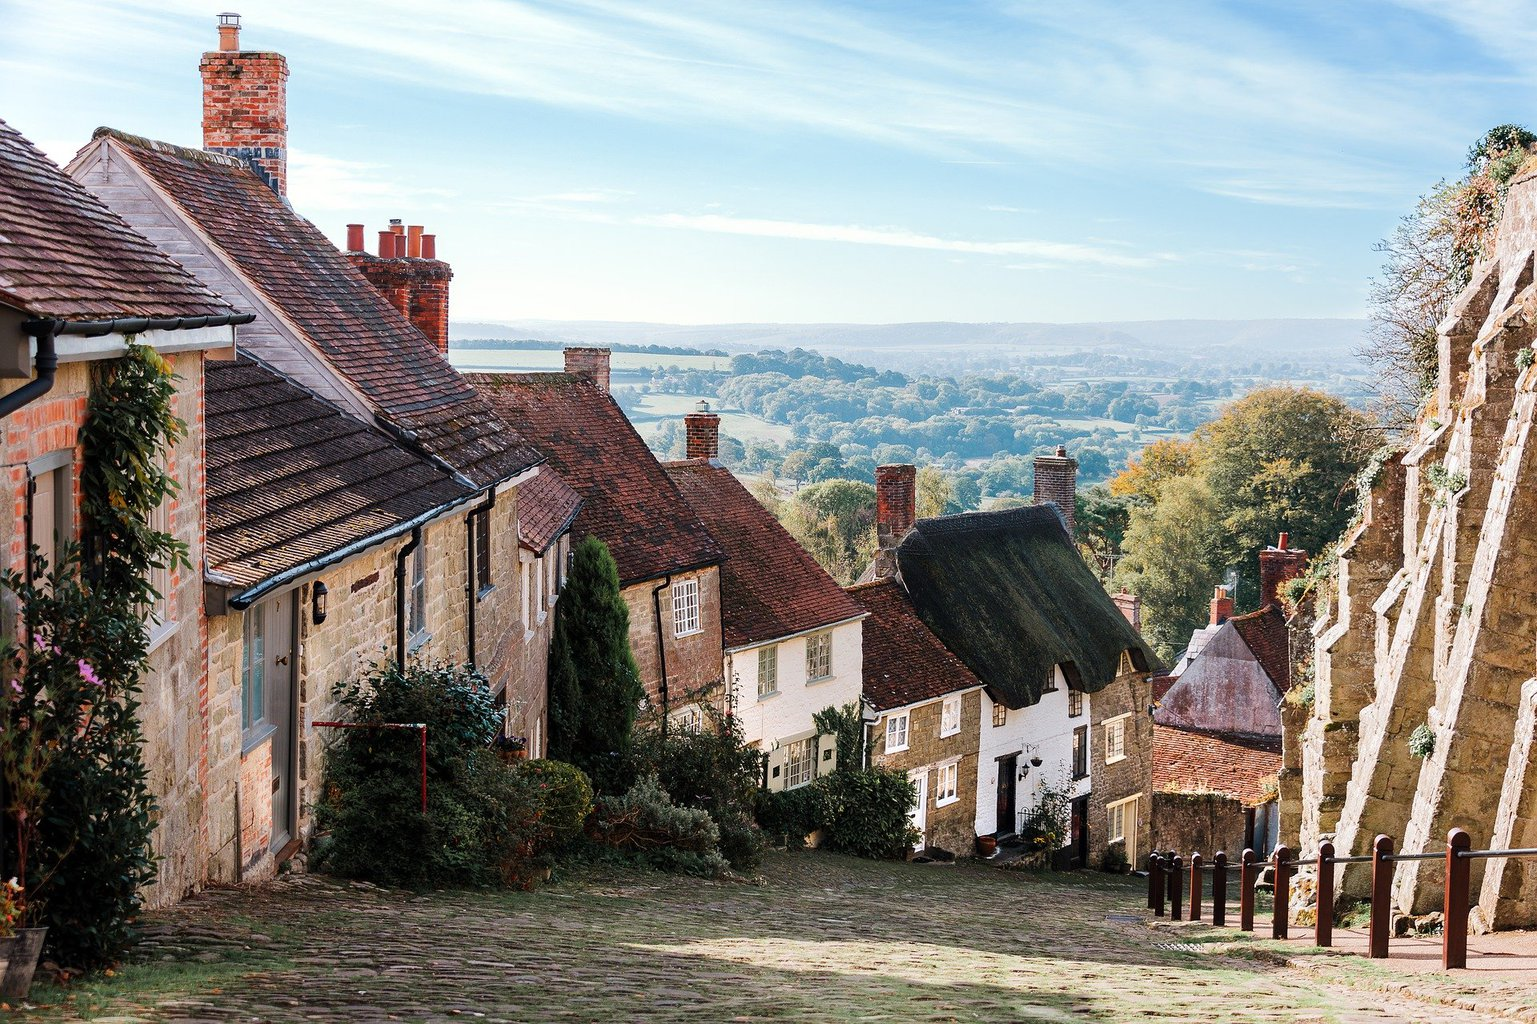 Dorset Towns: 19 Towns You Need To Visit In Dorset